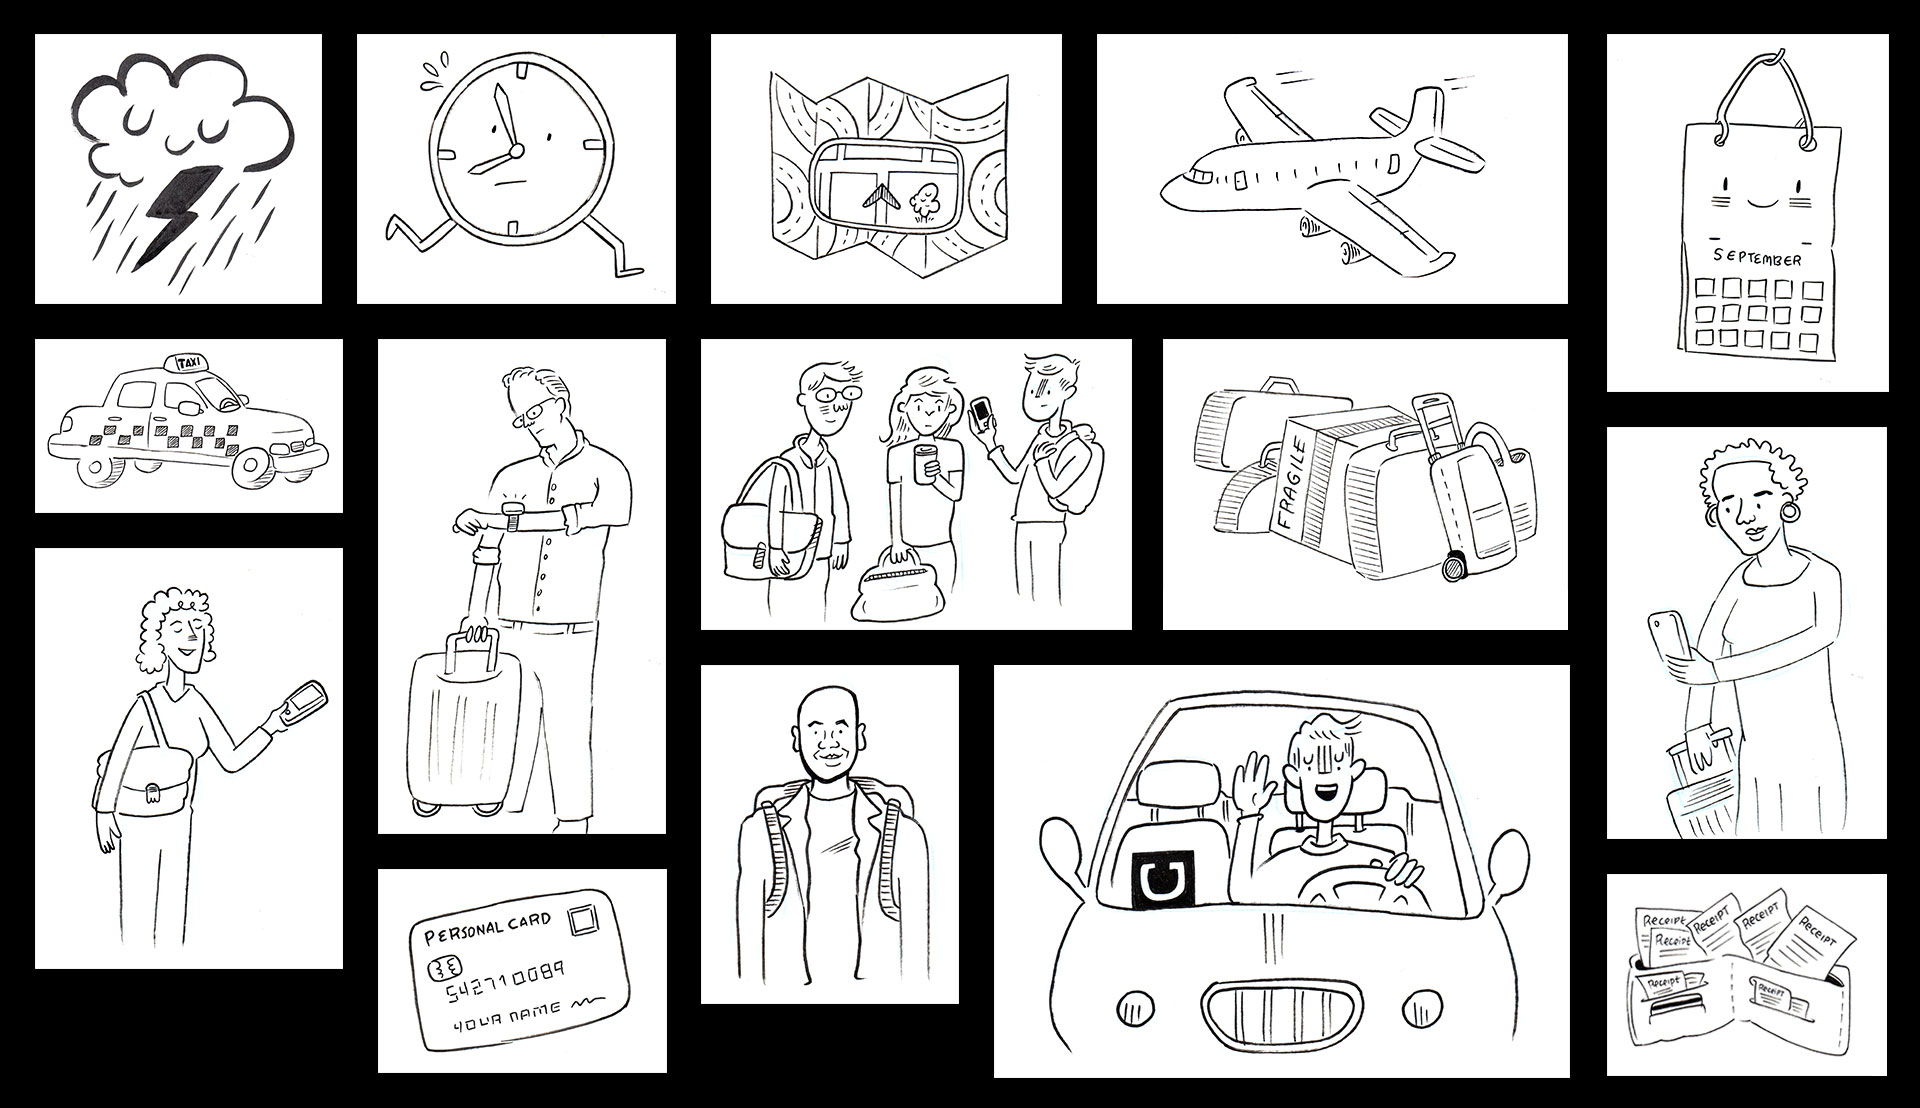 uber-illustrations-examples